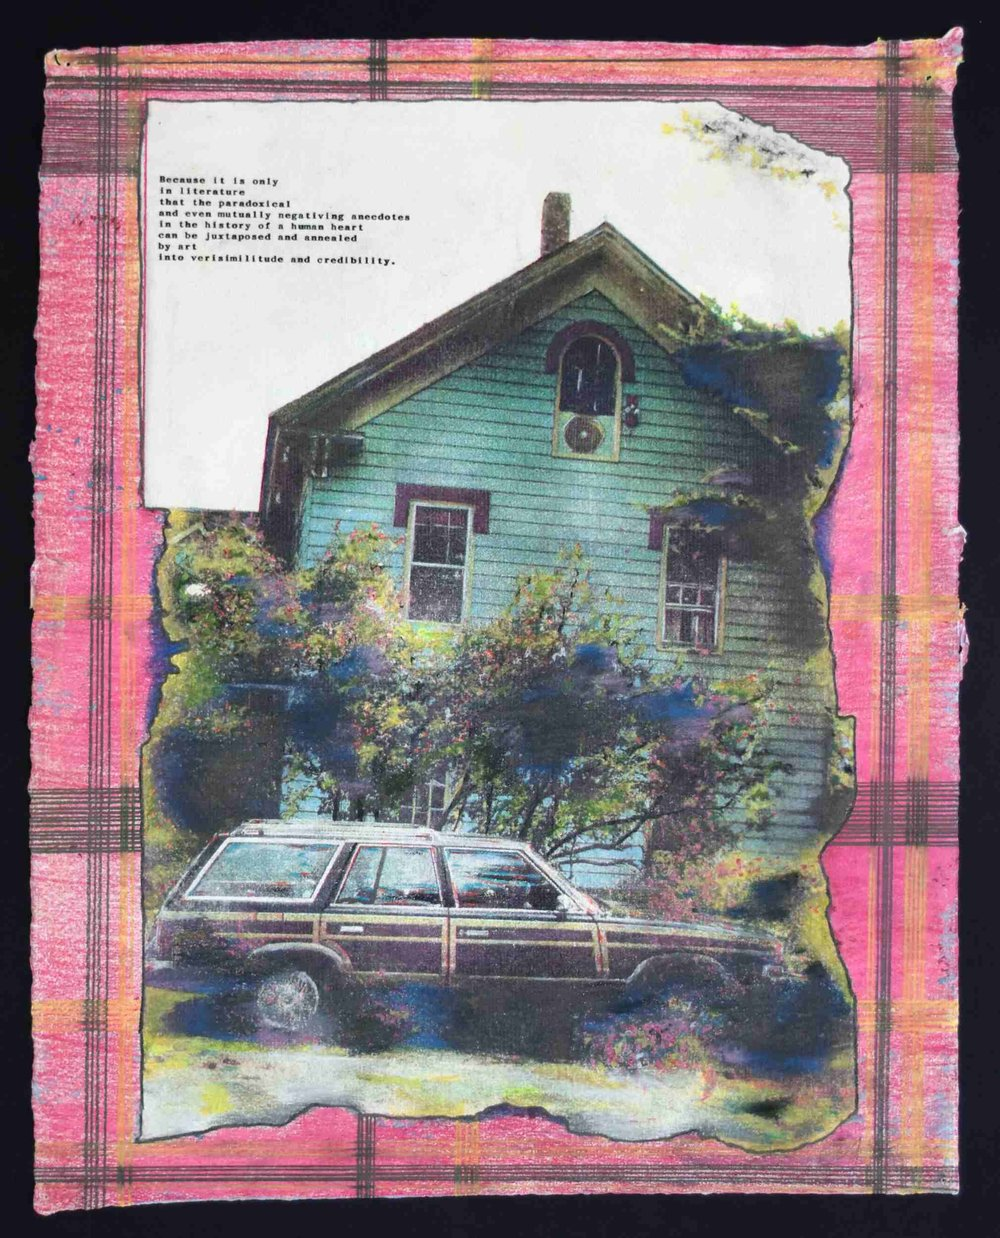 Greg Shattenberg,  Home with Faulkner,  1987, Mixed media, 14 x 17 inches